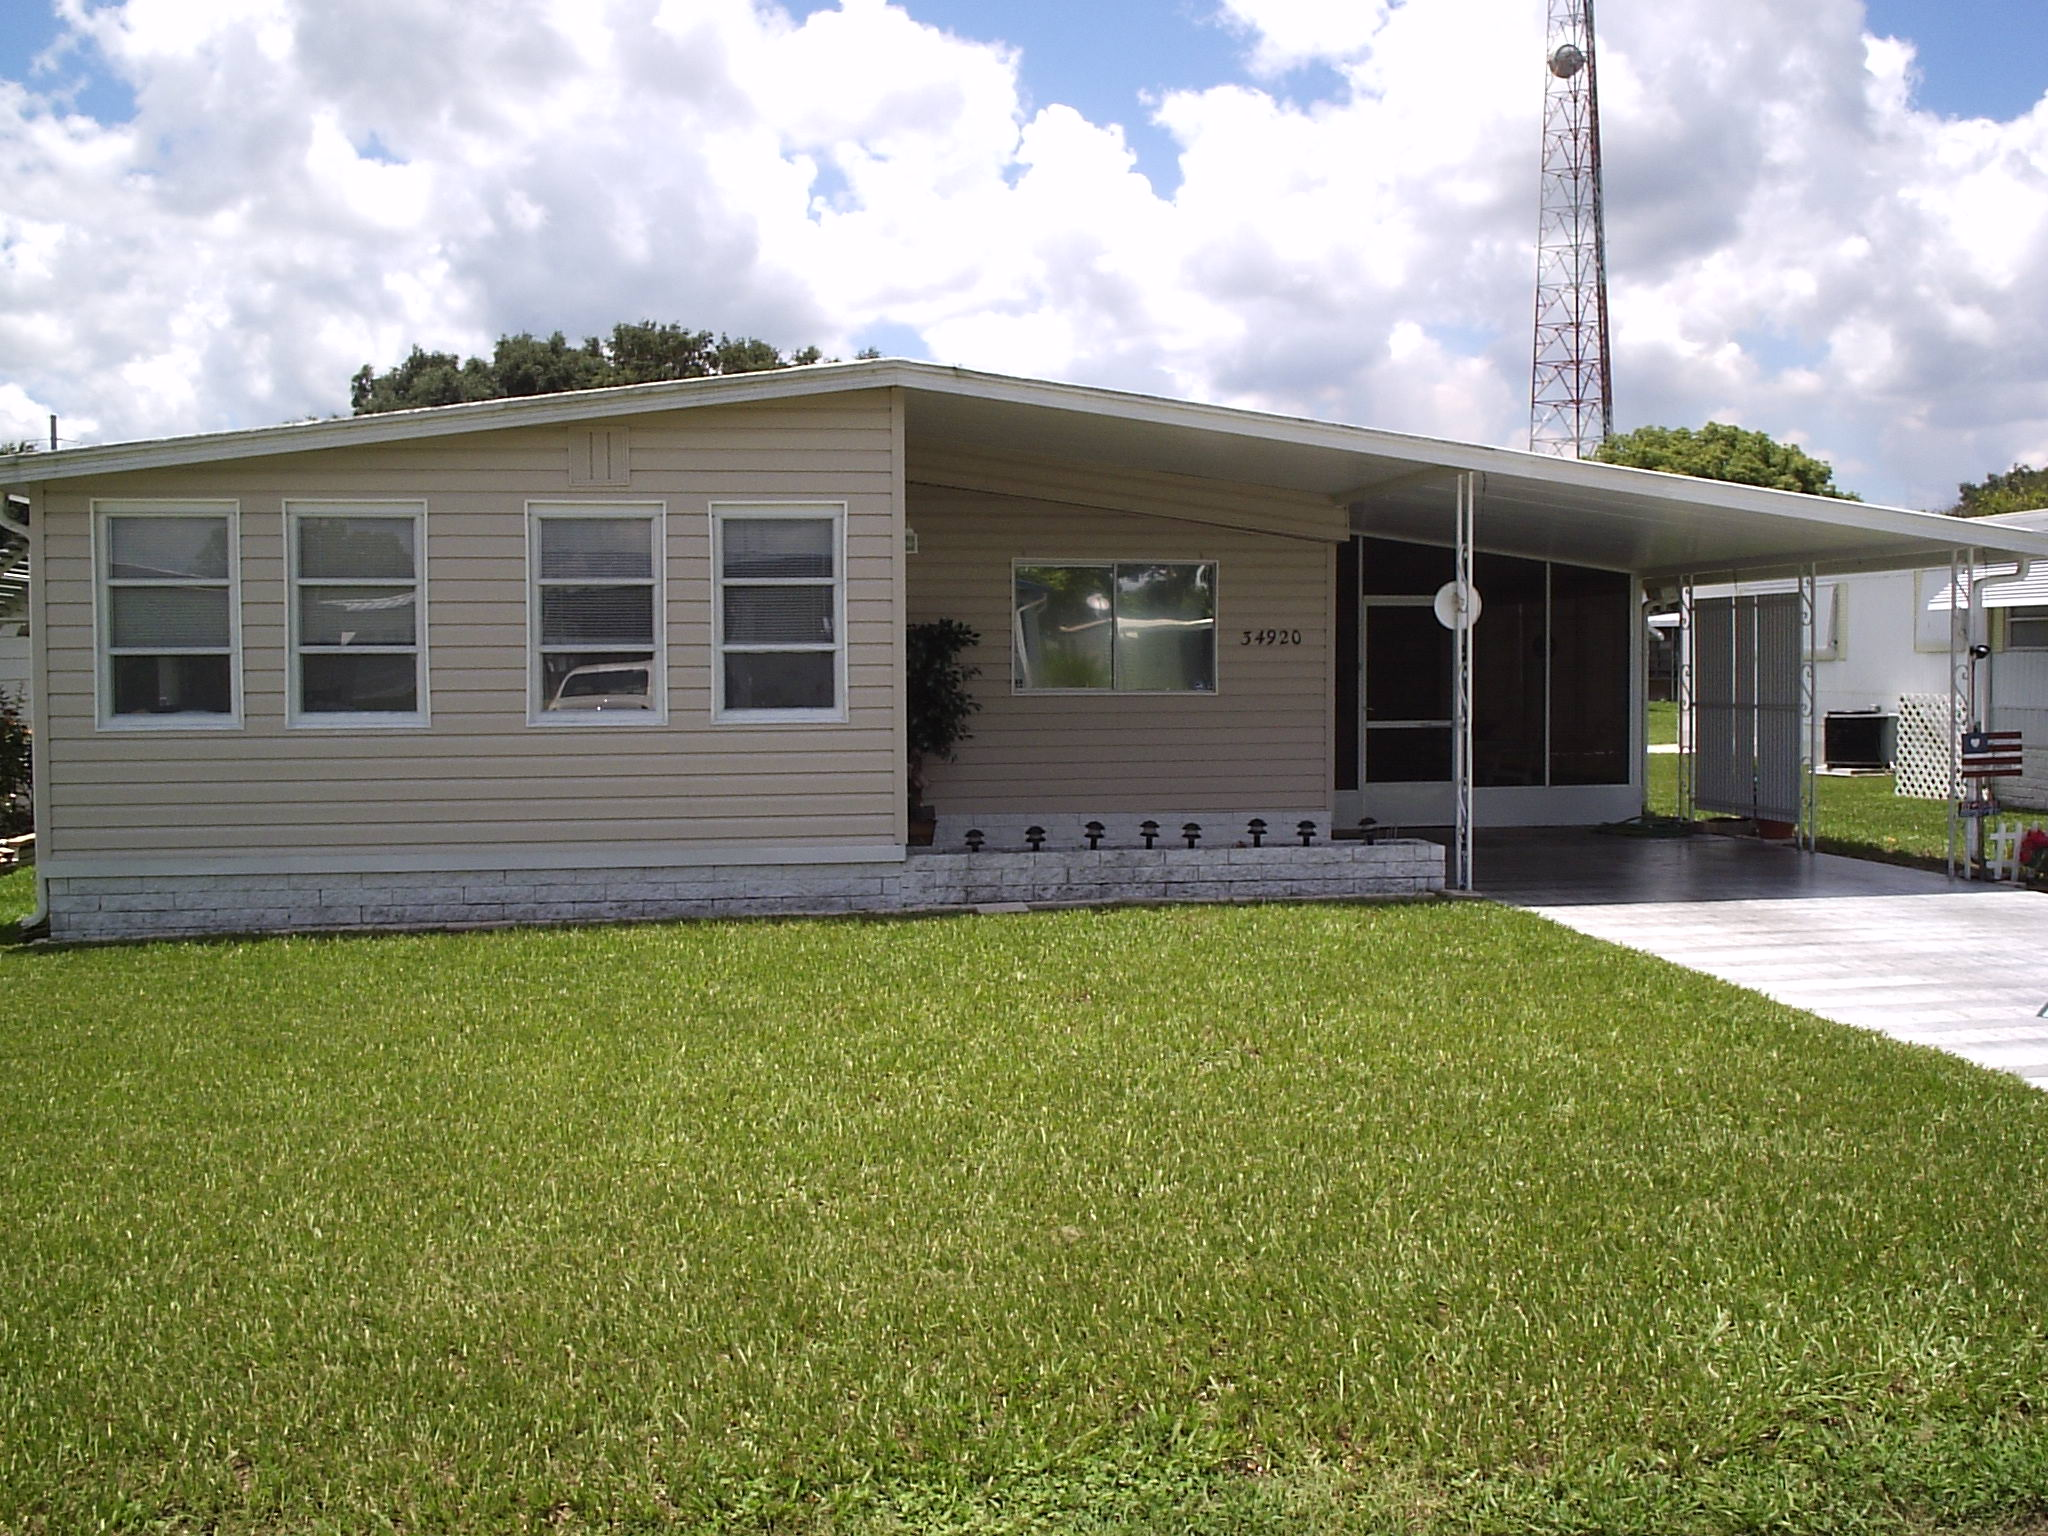 PRICE REDUCED AGAIN on 2 Bedroom/2 Bath Double-Wide Mobile in Zephyr